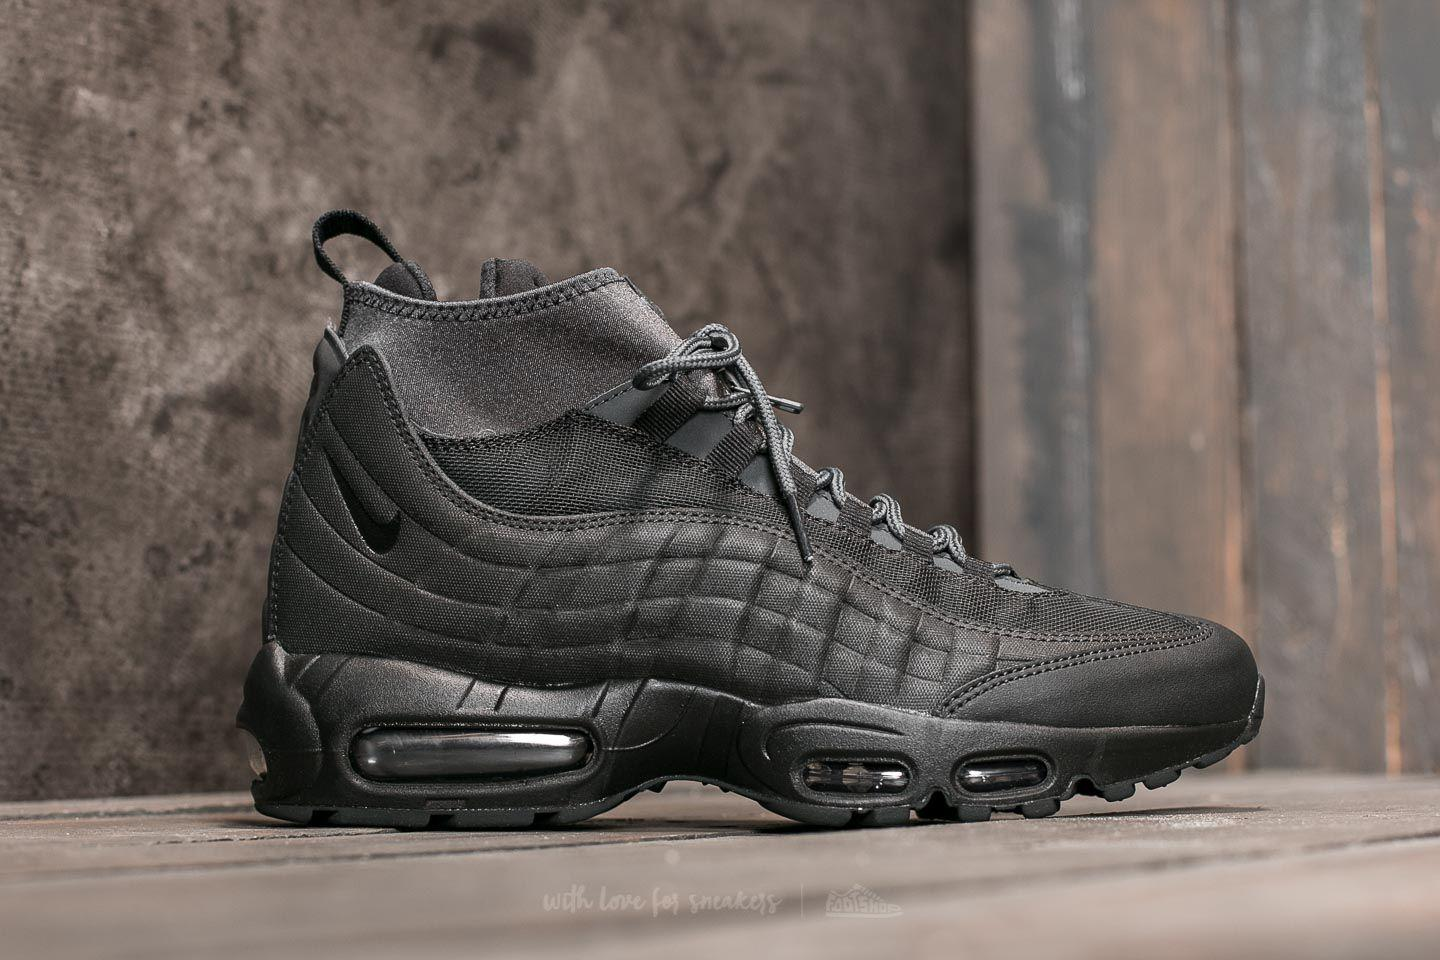 435bbf9f95c7 Nike - Air Max 95 Sneakerboot Black  Black-anthracite-white for Men -. View  fullscreen